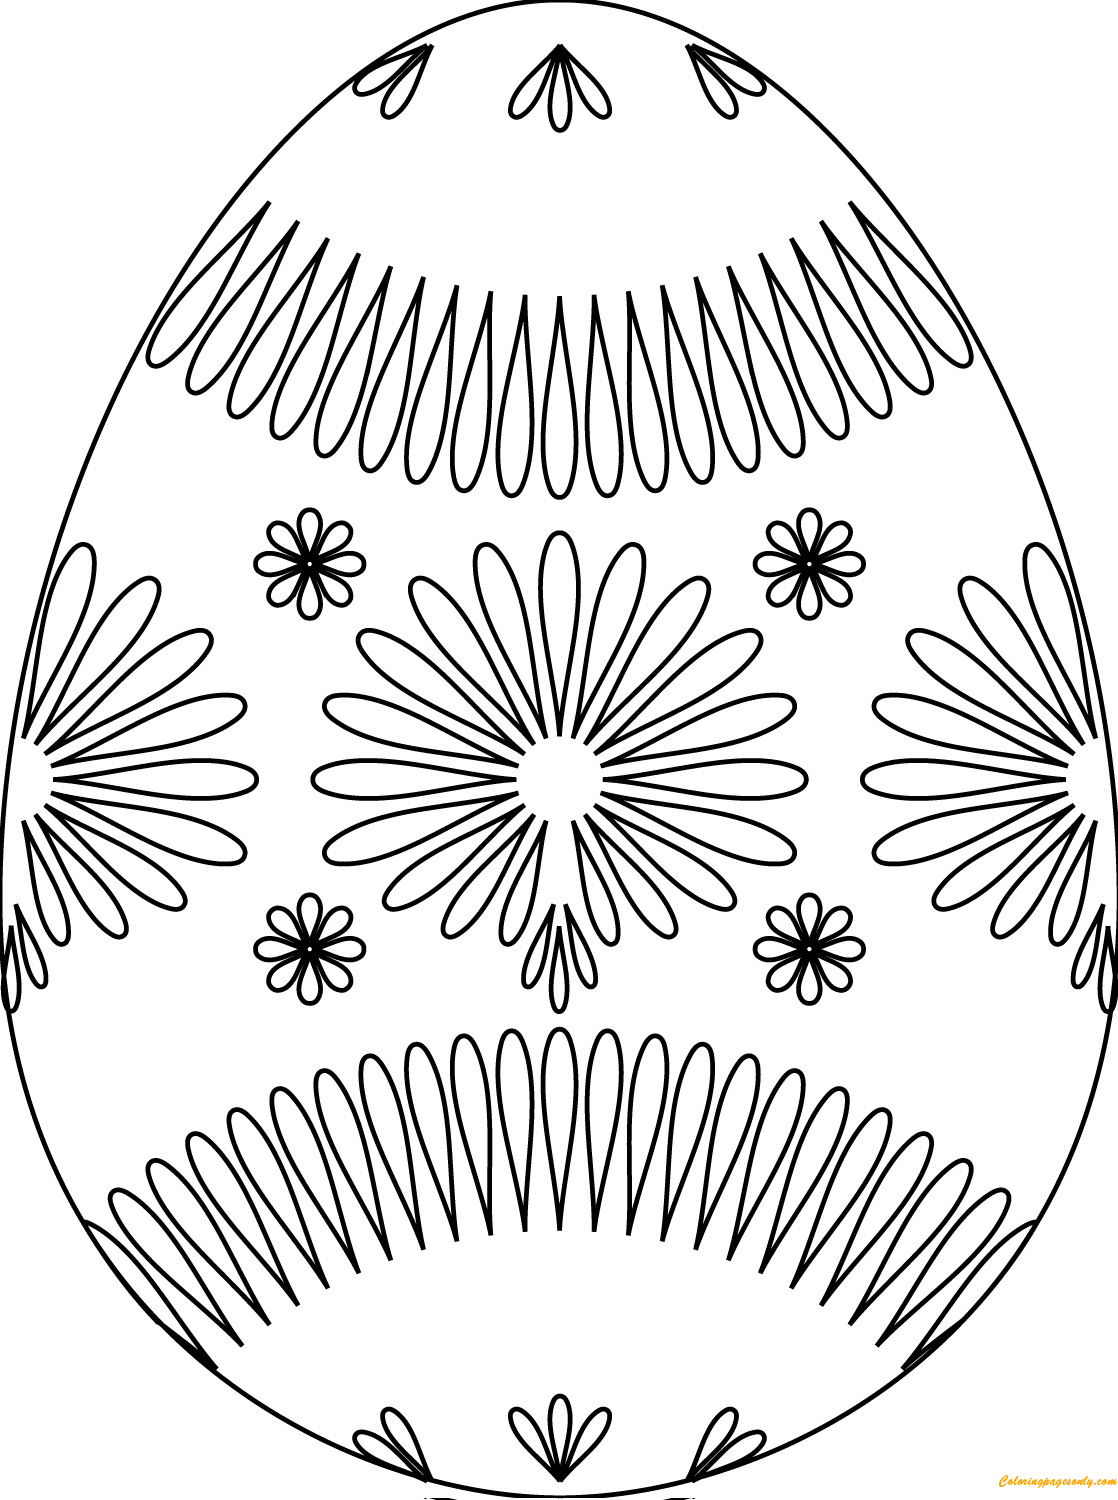 Easter egg colouring games online - Colorful Easter Egg With Nice Flower Pattern Coloring Page